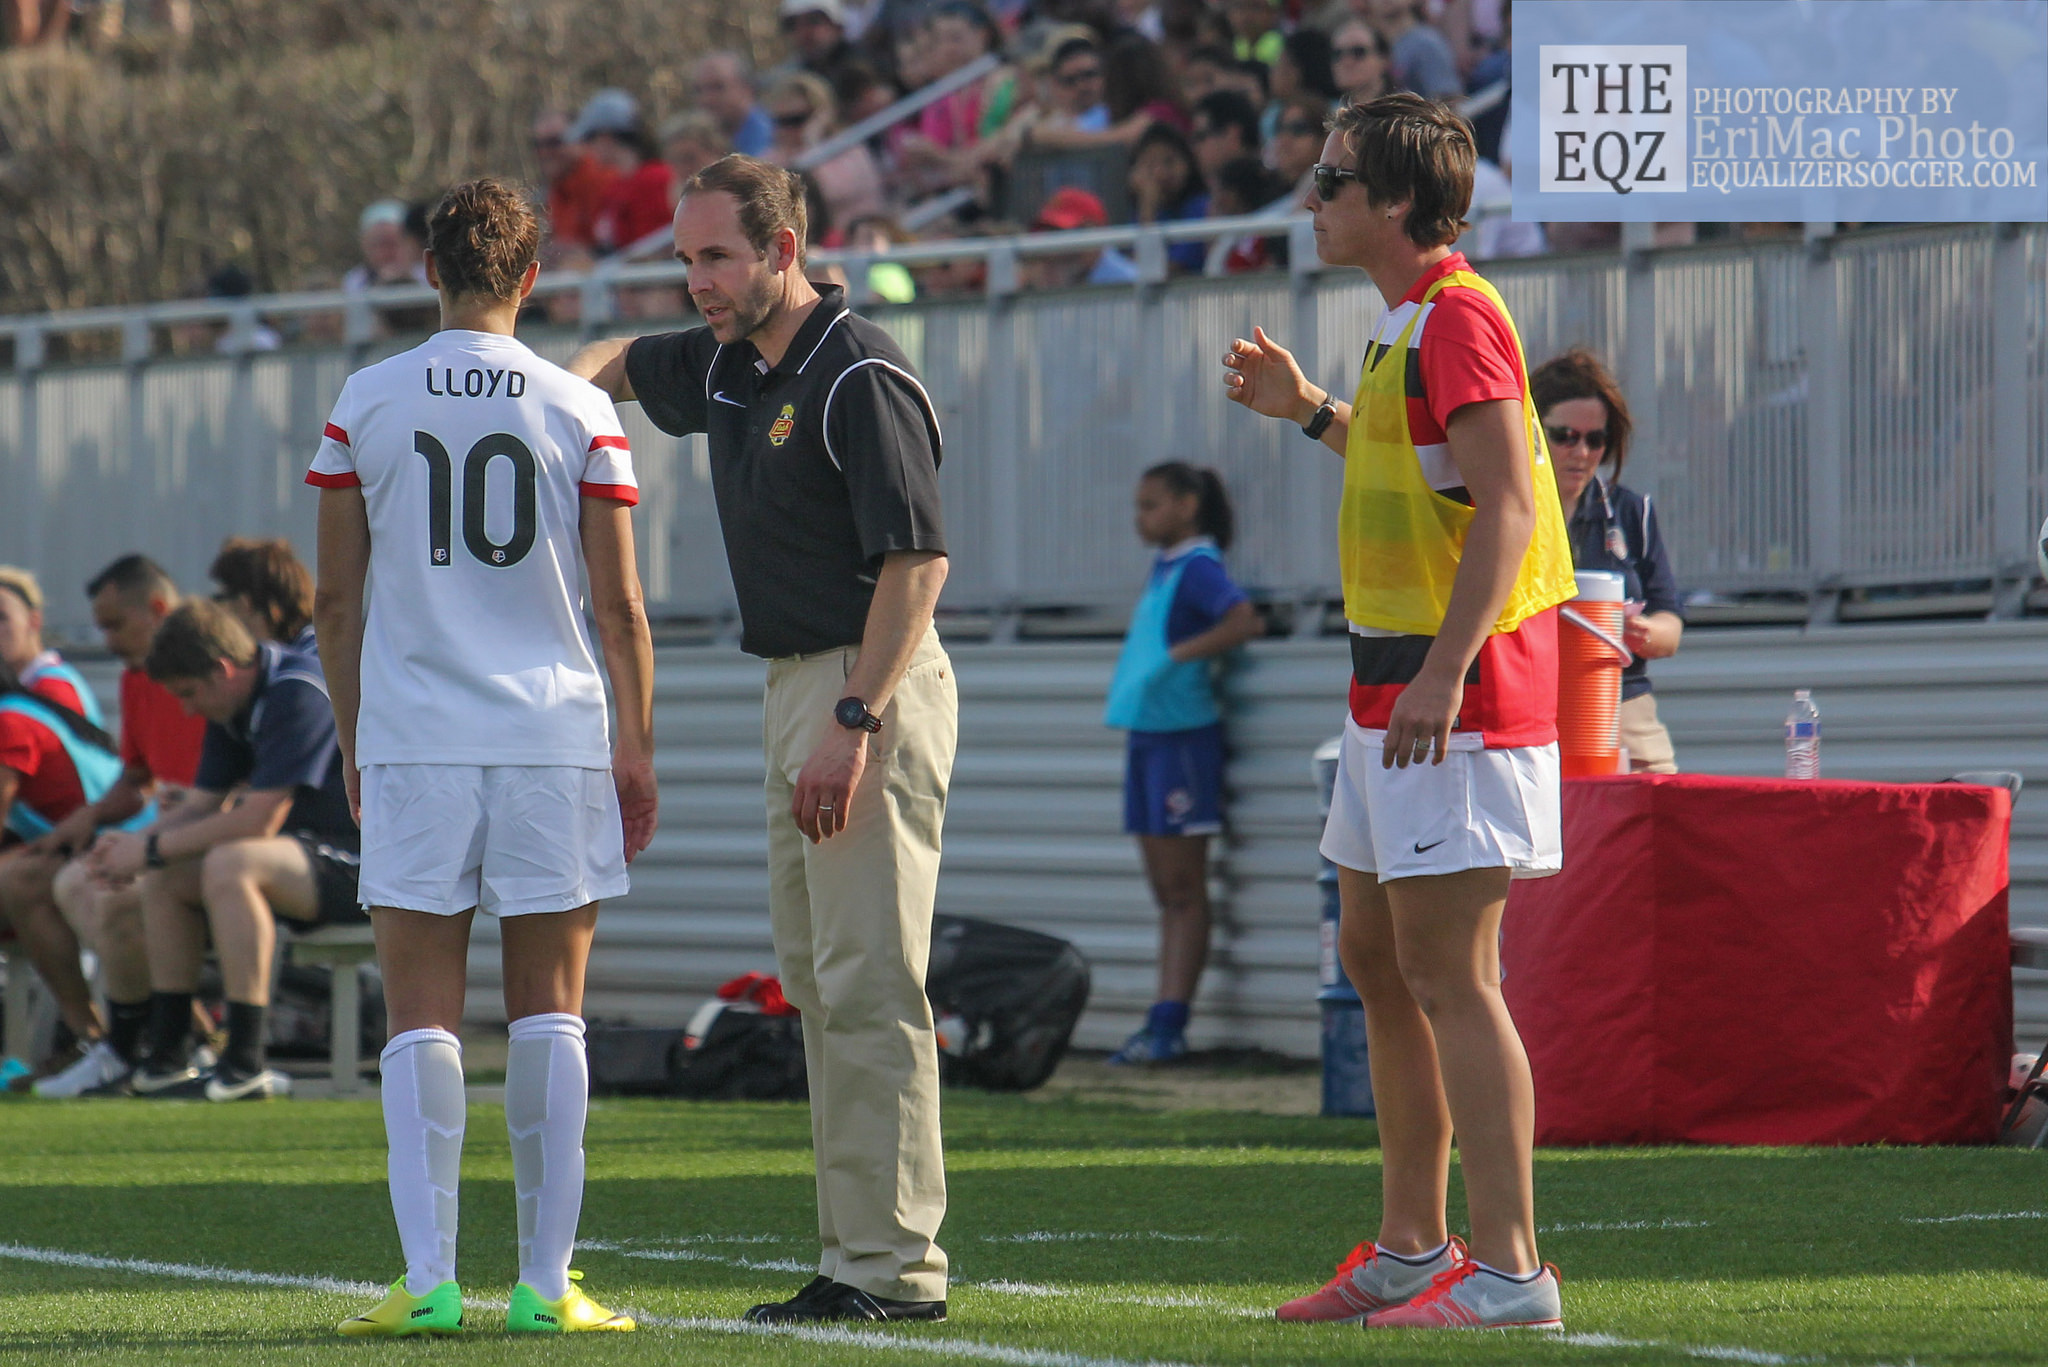 Aaron Lines doesn't see how Abby Wambach can skip the NWSL season and still be available to play for the United States. (Photo Copyright Erica McCaulley for The Equalizer)